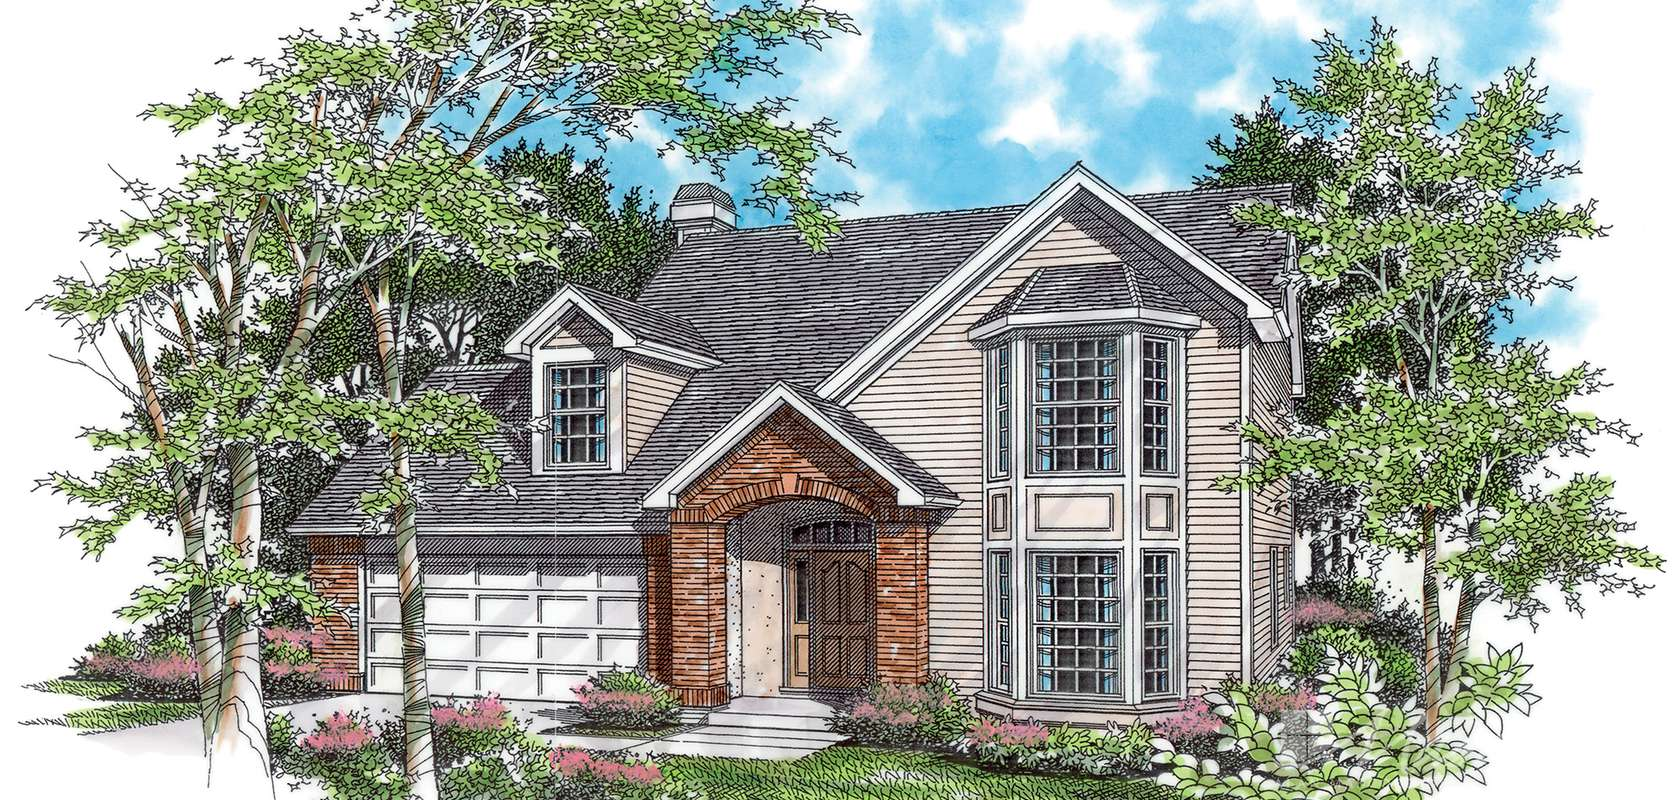 Mascord House Plan B2138: The Stayton